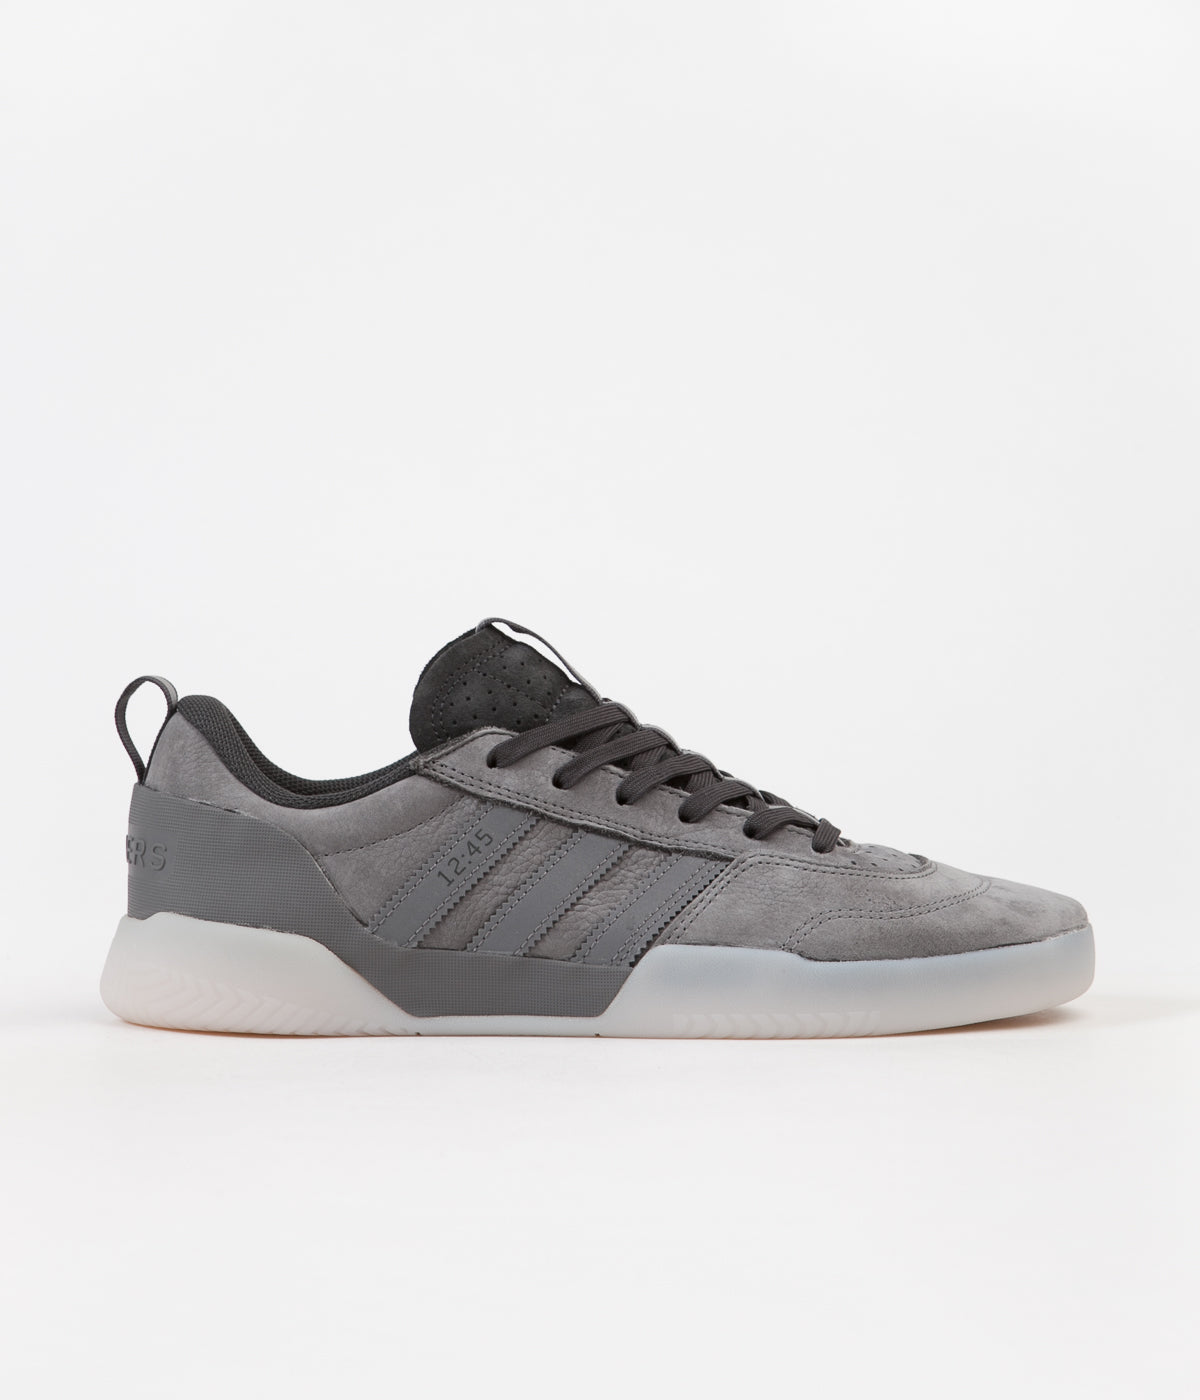 the latest 06f86 e7cf6 Adidas x Numbers City Cup Shoes - Grey Four   Carbon   Grey One